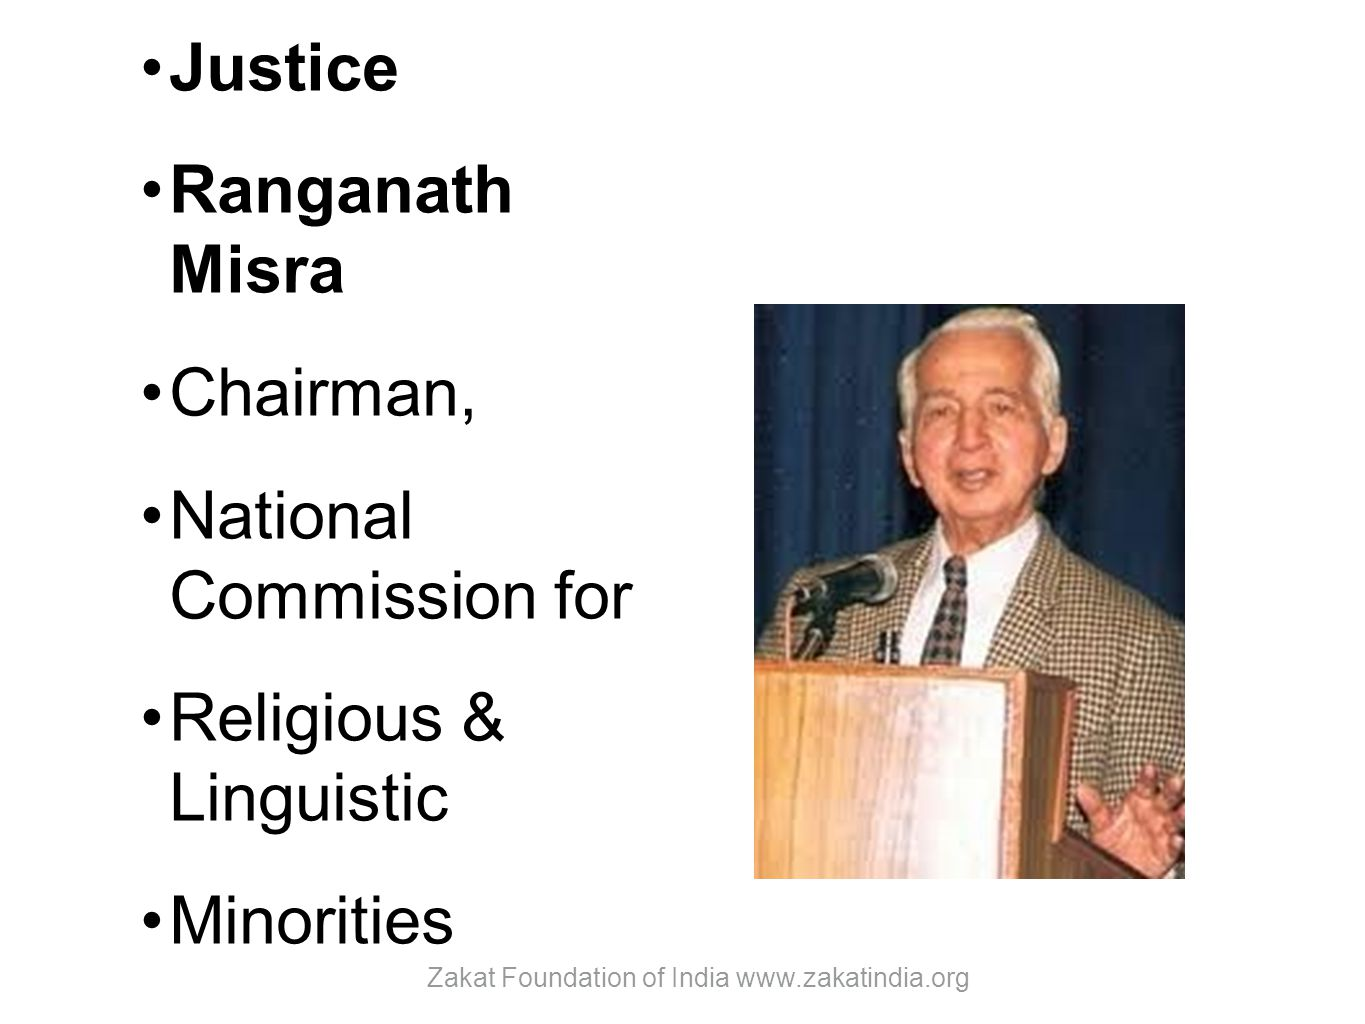 Justice Ranganath Misra Chairman, National Commission for Religious & Linguistic Minorities Zakat Foundation of India www.zakatindia.org